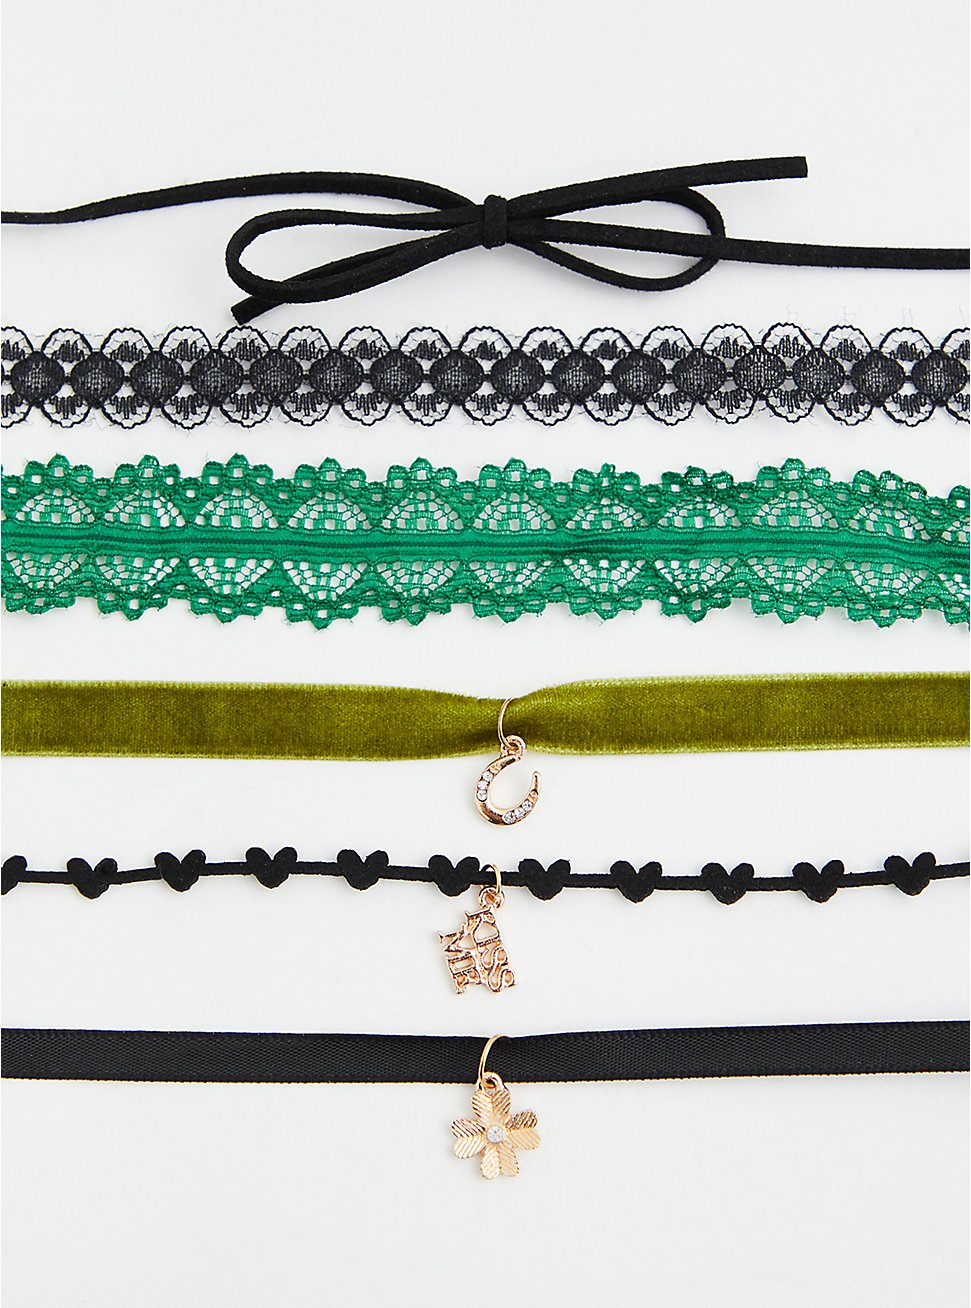 Green Lace Choker Necklace Set - Set of 6 , , hi-res